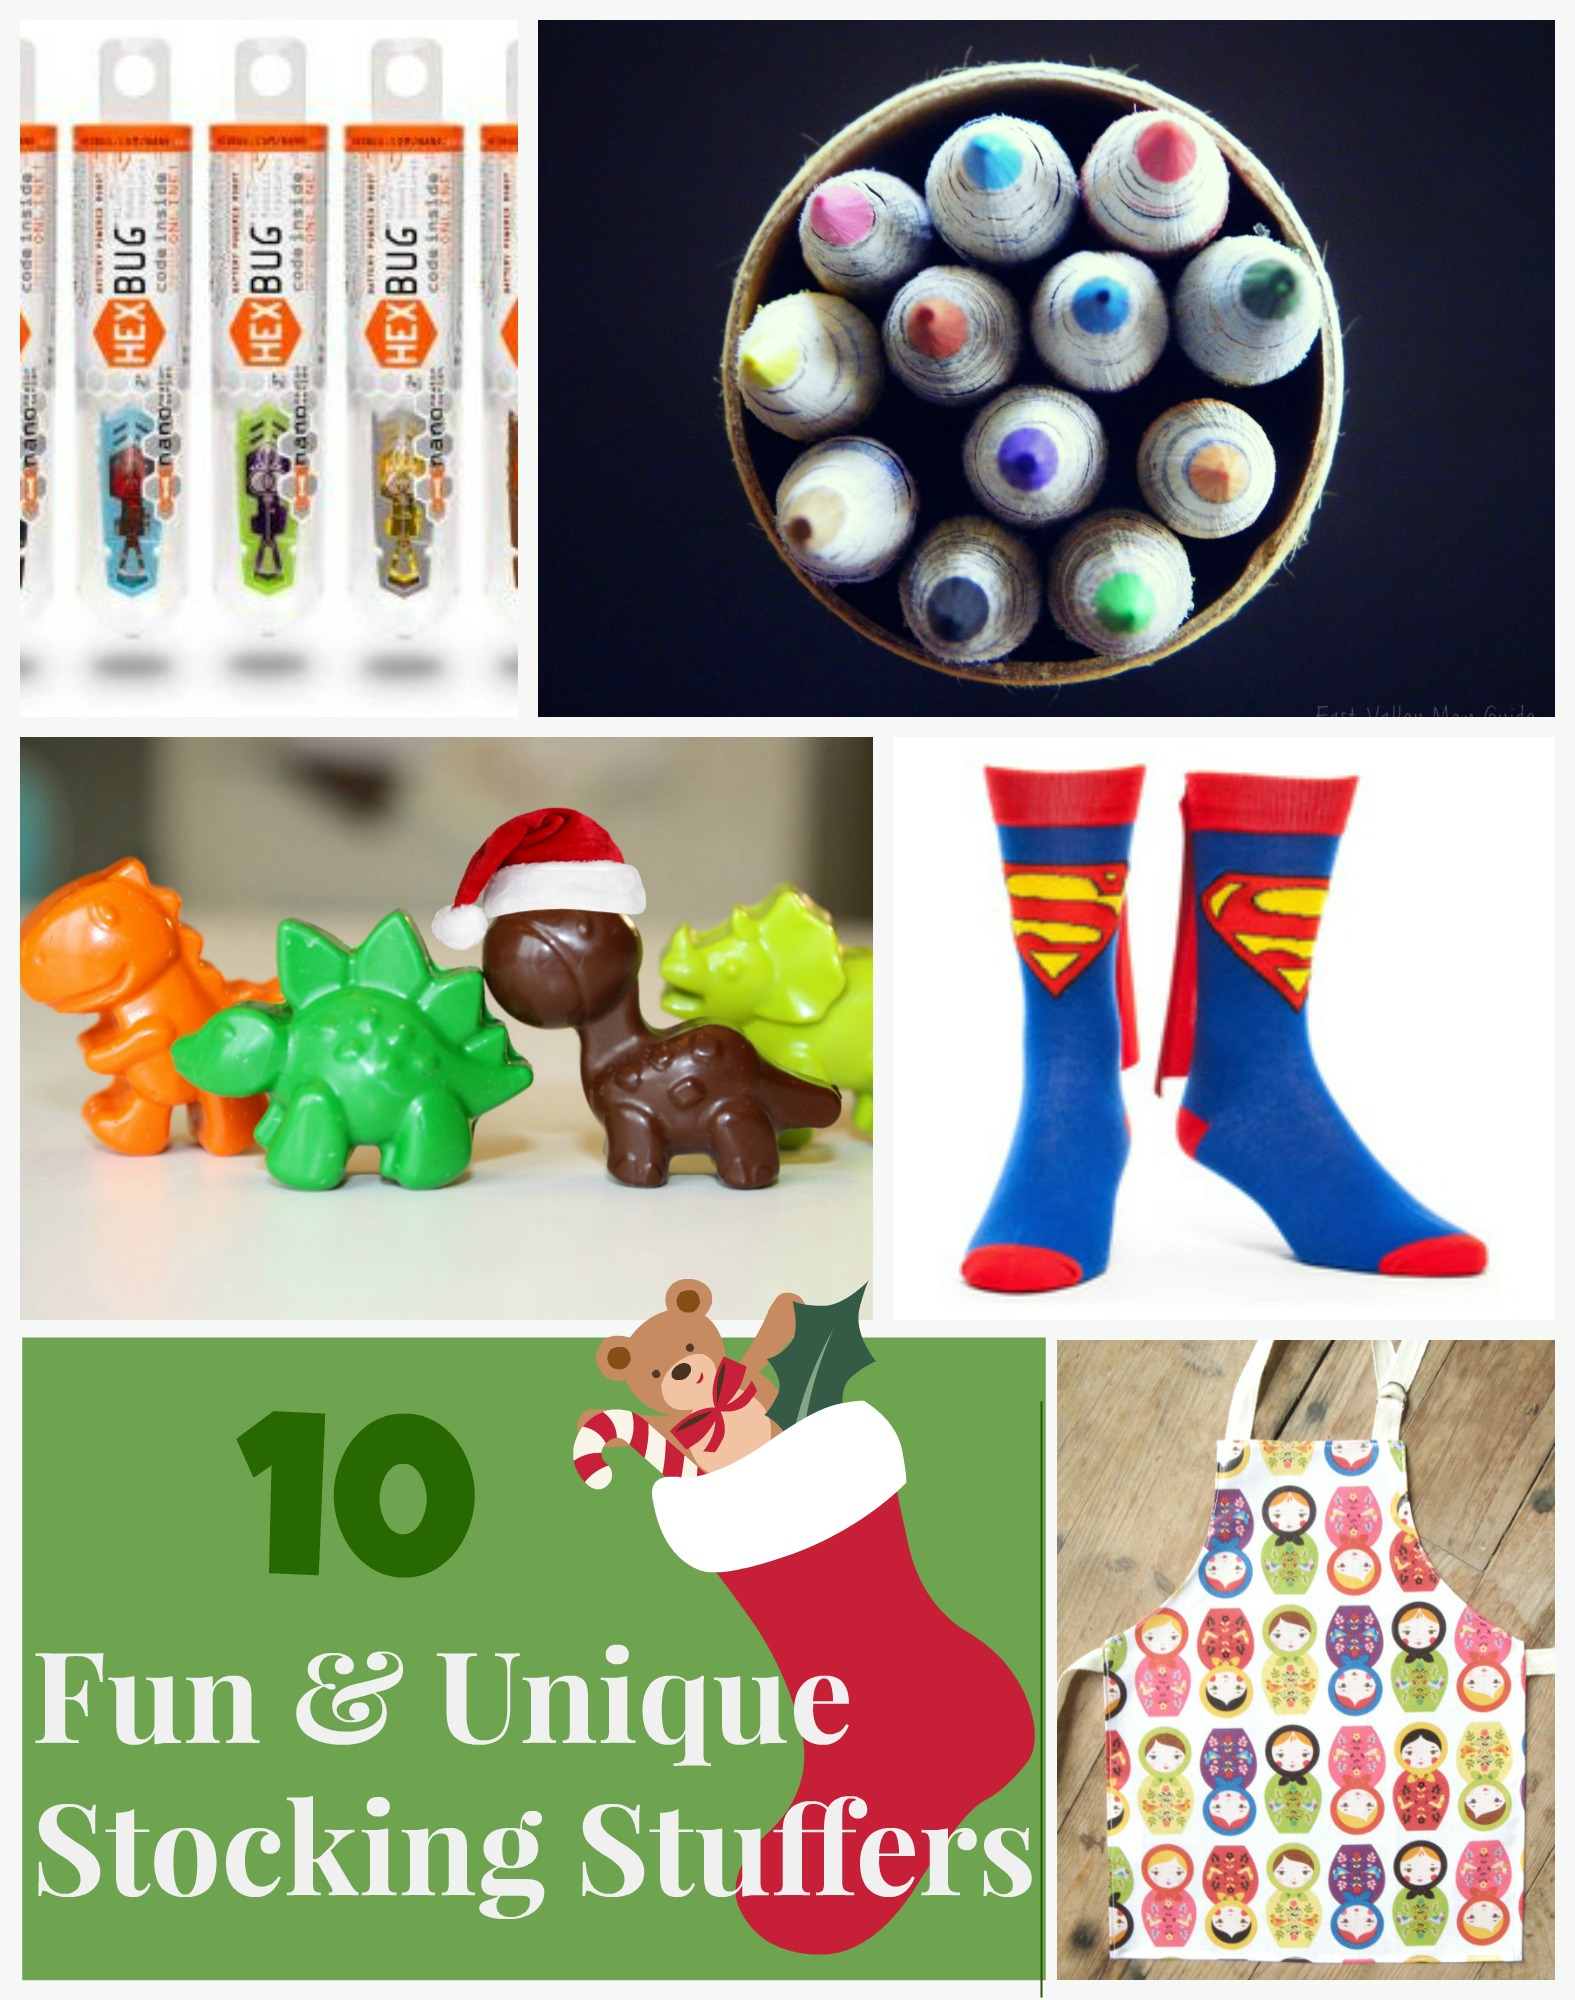 10 fun and unique stocking stuffer ideas Unique stocking stuffers adults